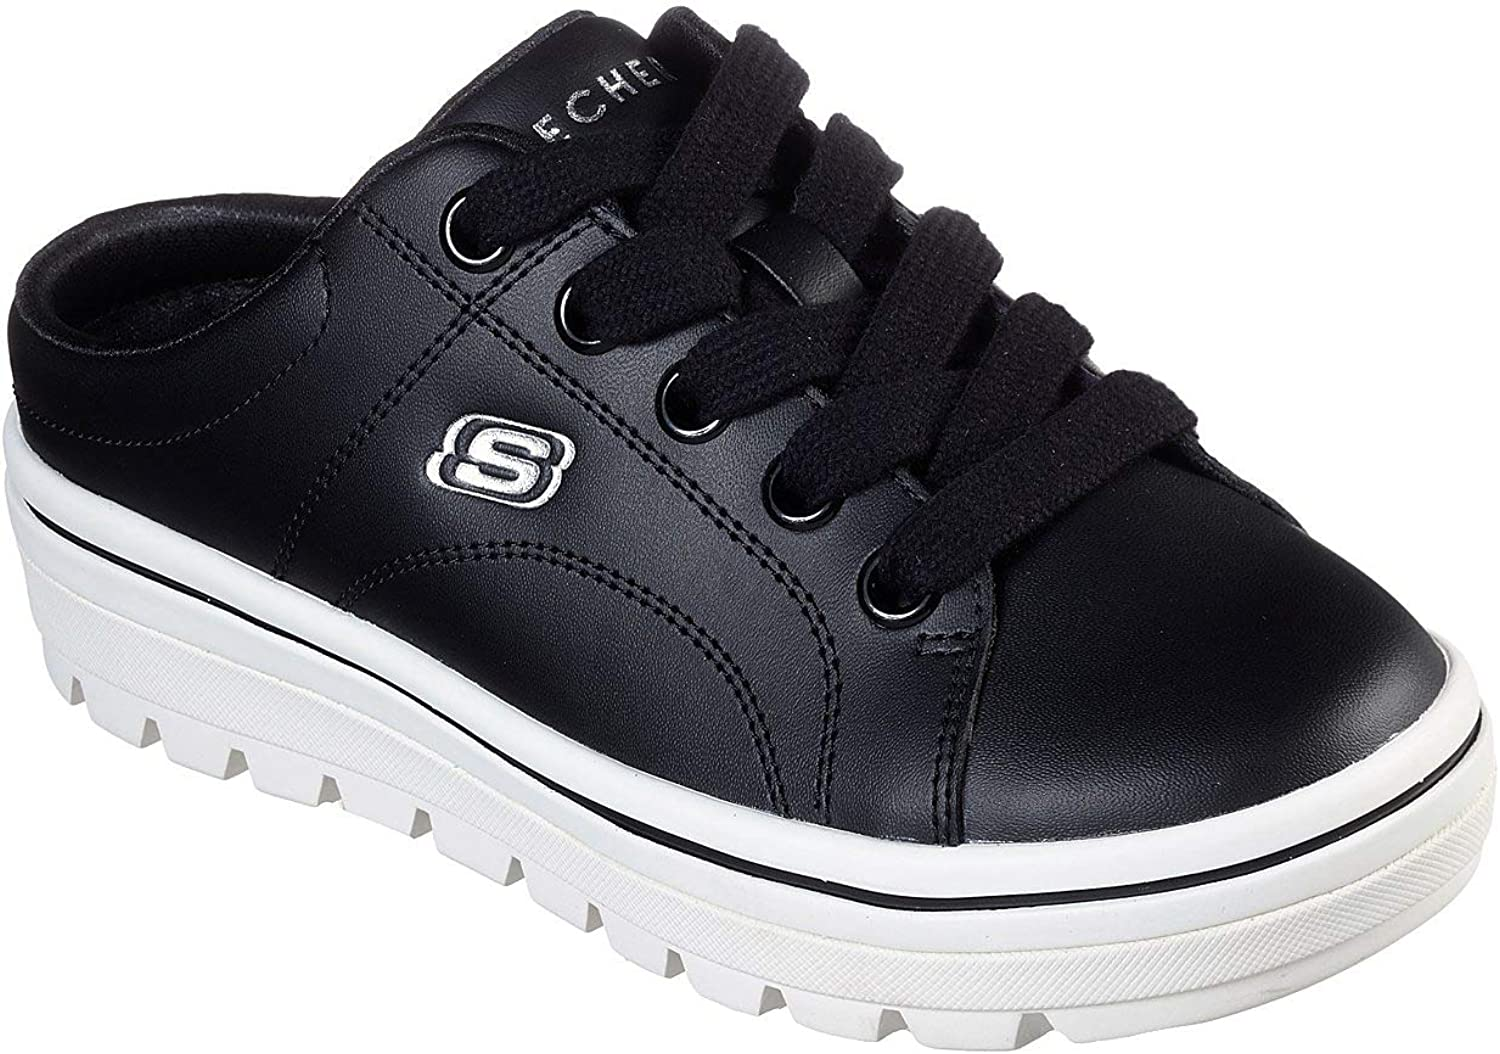 Skechers Street Cleat 2 Freshalicious Womens Sneaker Clogs